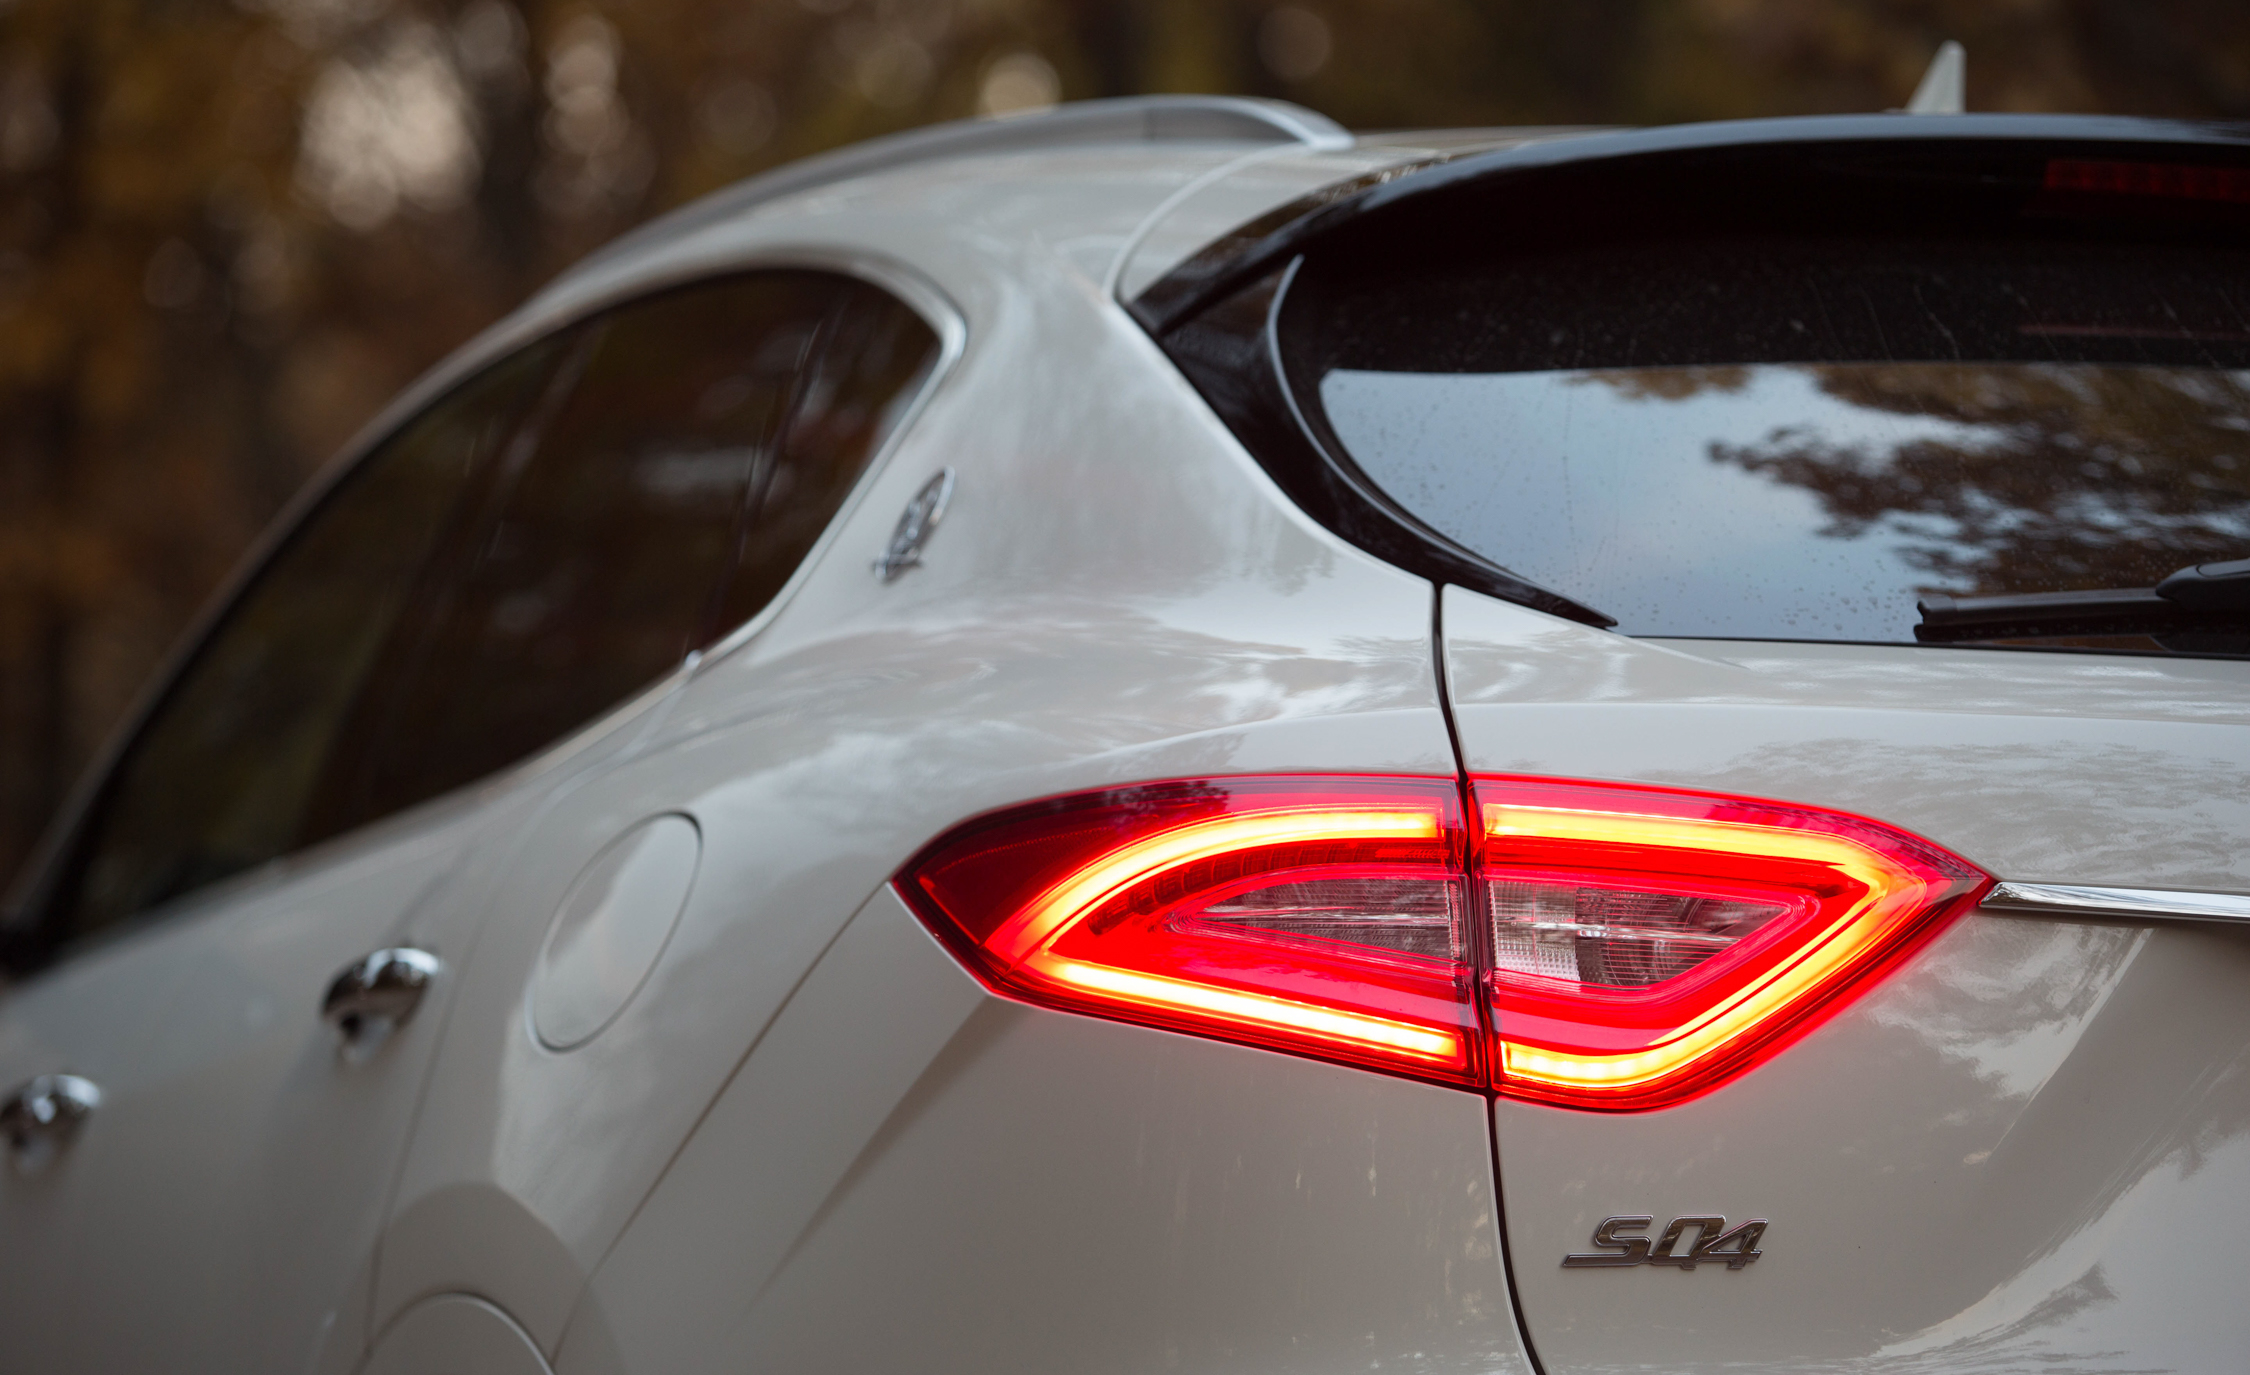 2017 Maserati Levante S Q4 Exterior View Taillight (Photo 6 of 21)